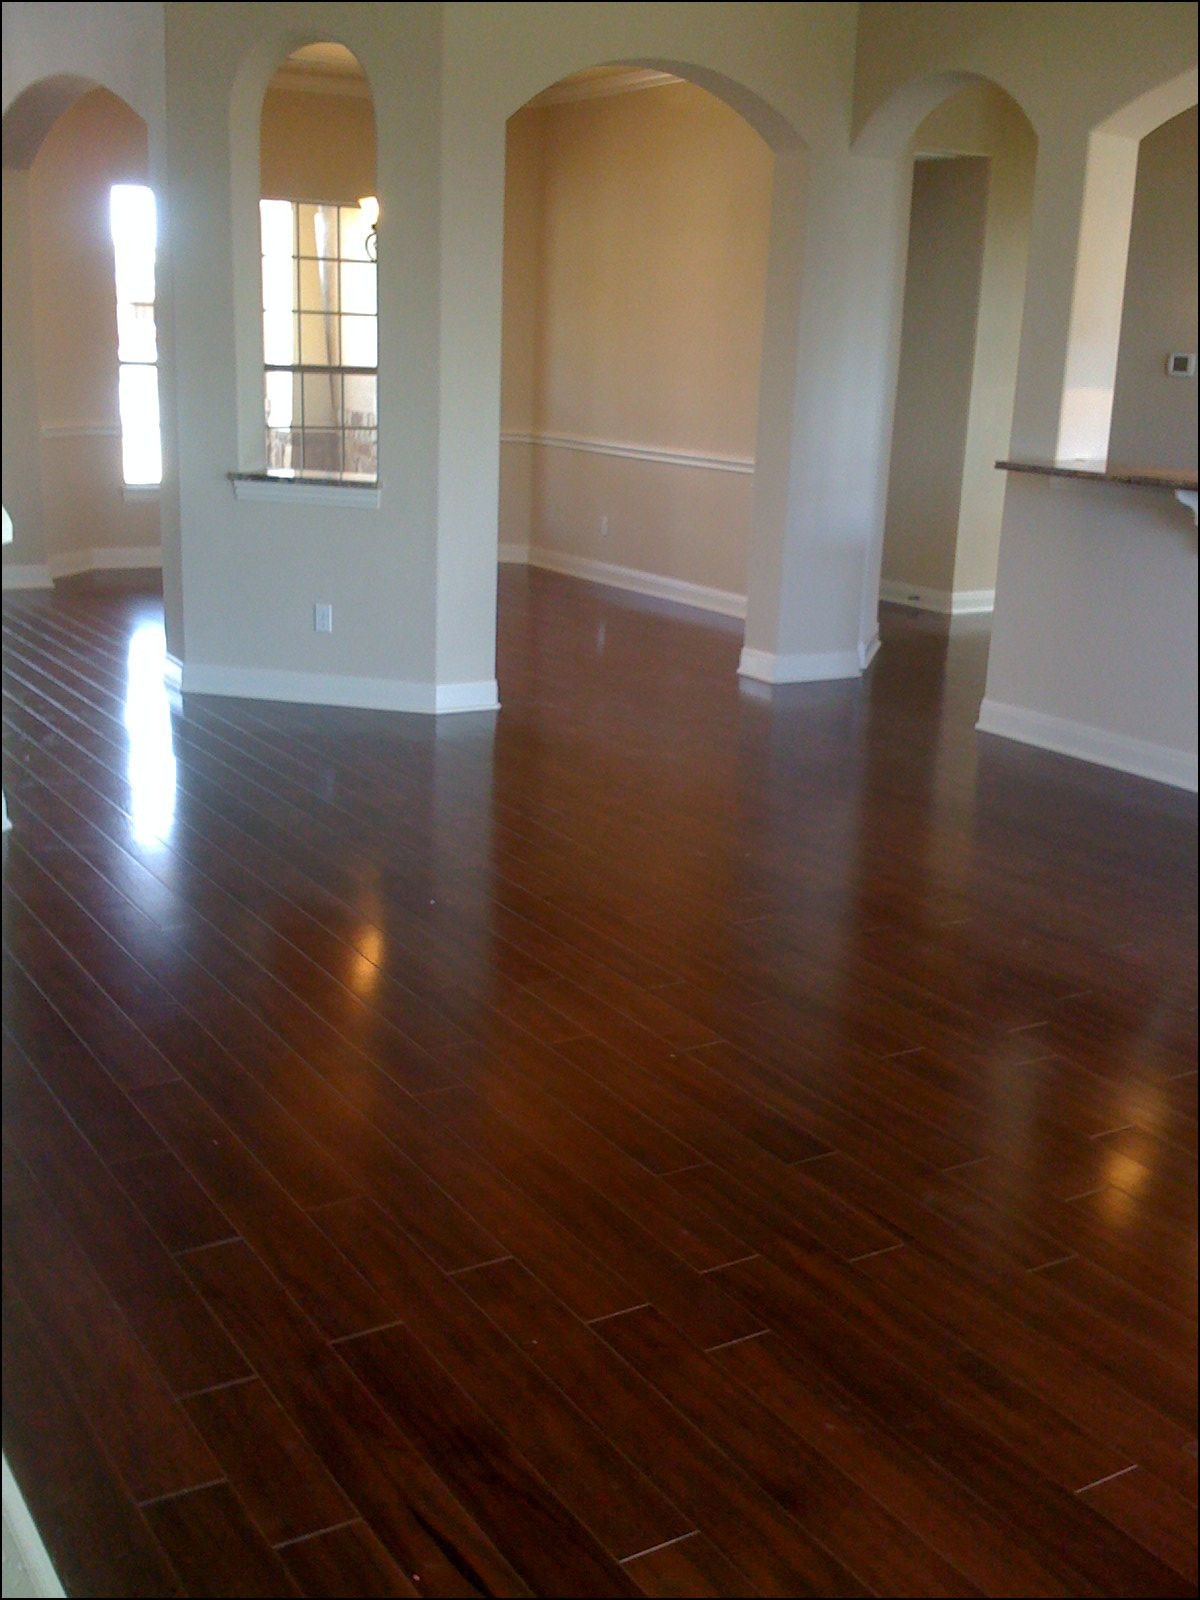 restaining hardwood floors darker cost of hardwood flooring suppliers france flooring ideas within hardwood flooring pictures in homes galerie dark wood floors but all i can think of is